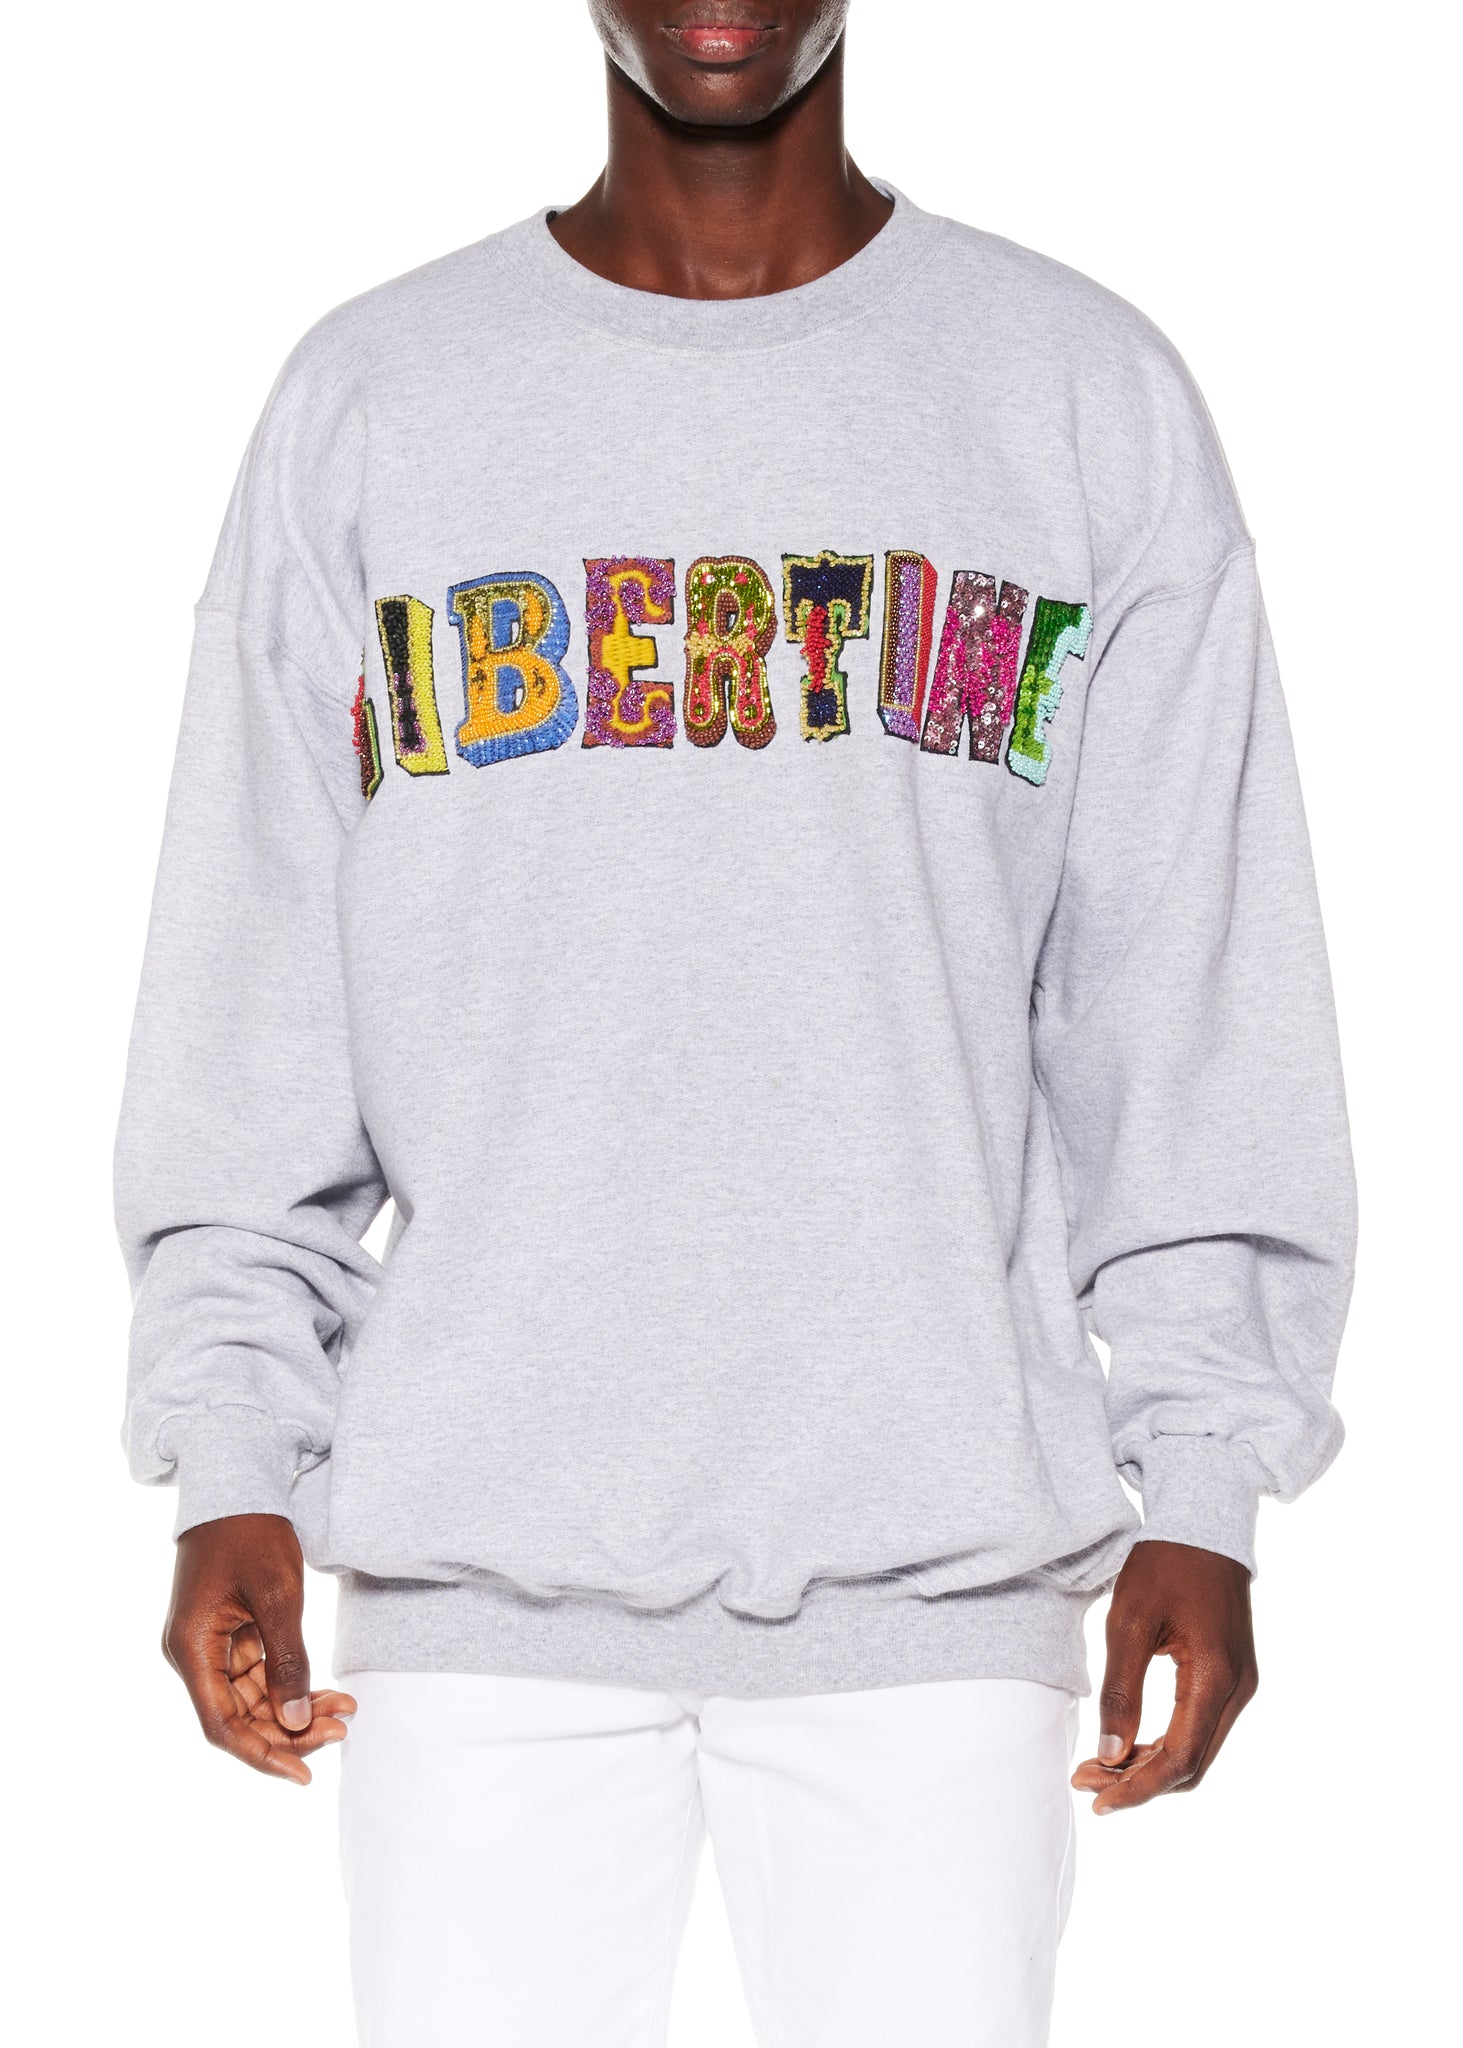 BEADED LIBERTINE CREWNECK PULLOVER SWEATSHIRT - Web Exclusives - Libertine